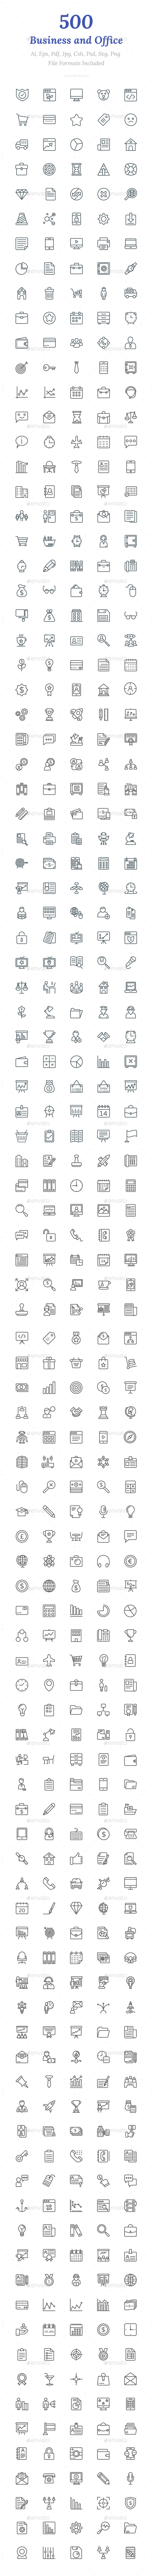 500 Business and Office Line Icons - Icons